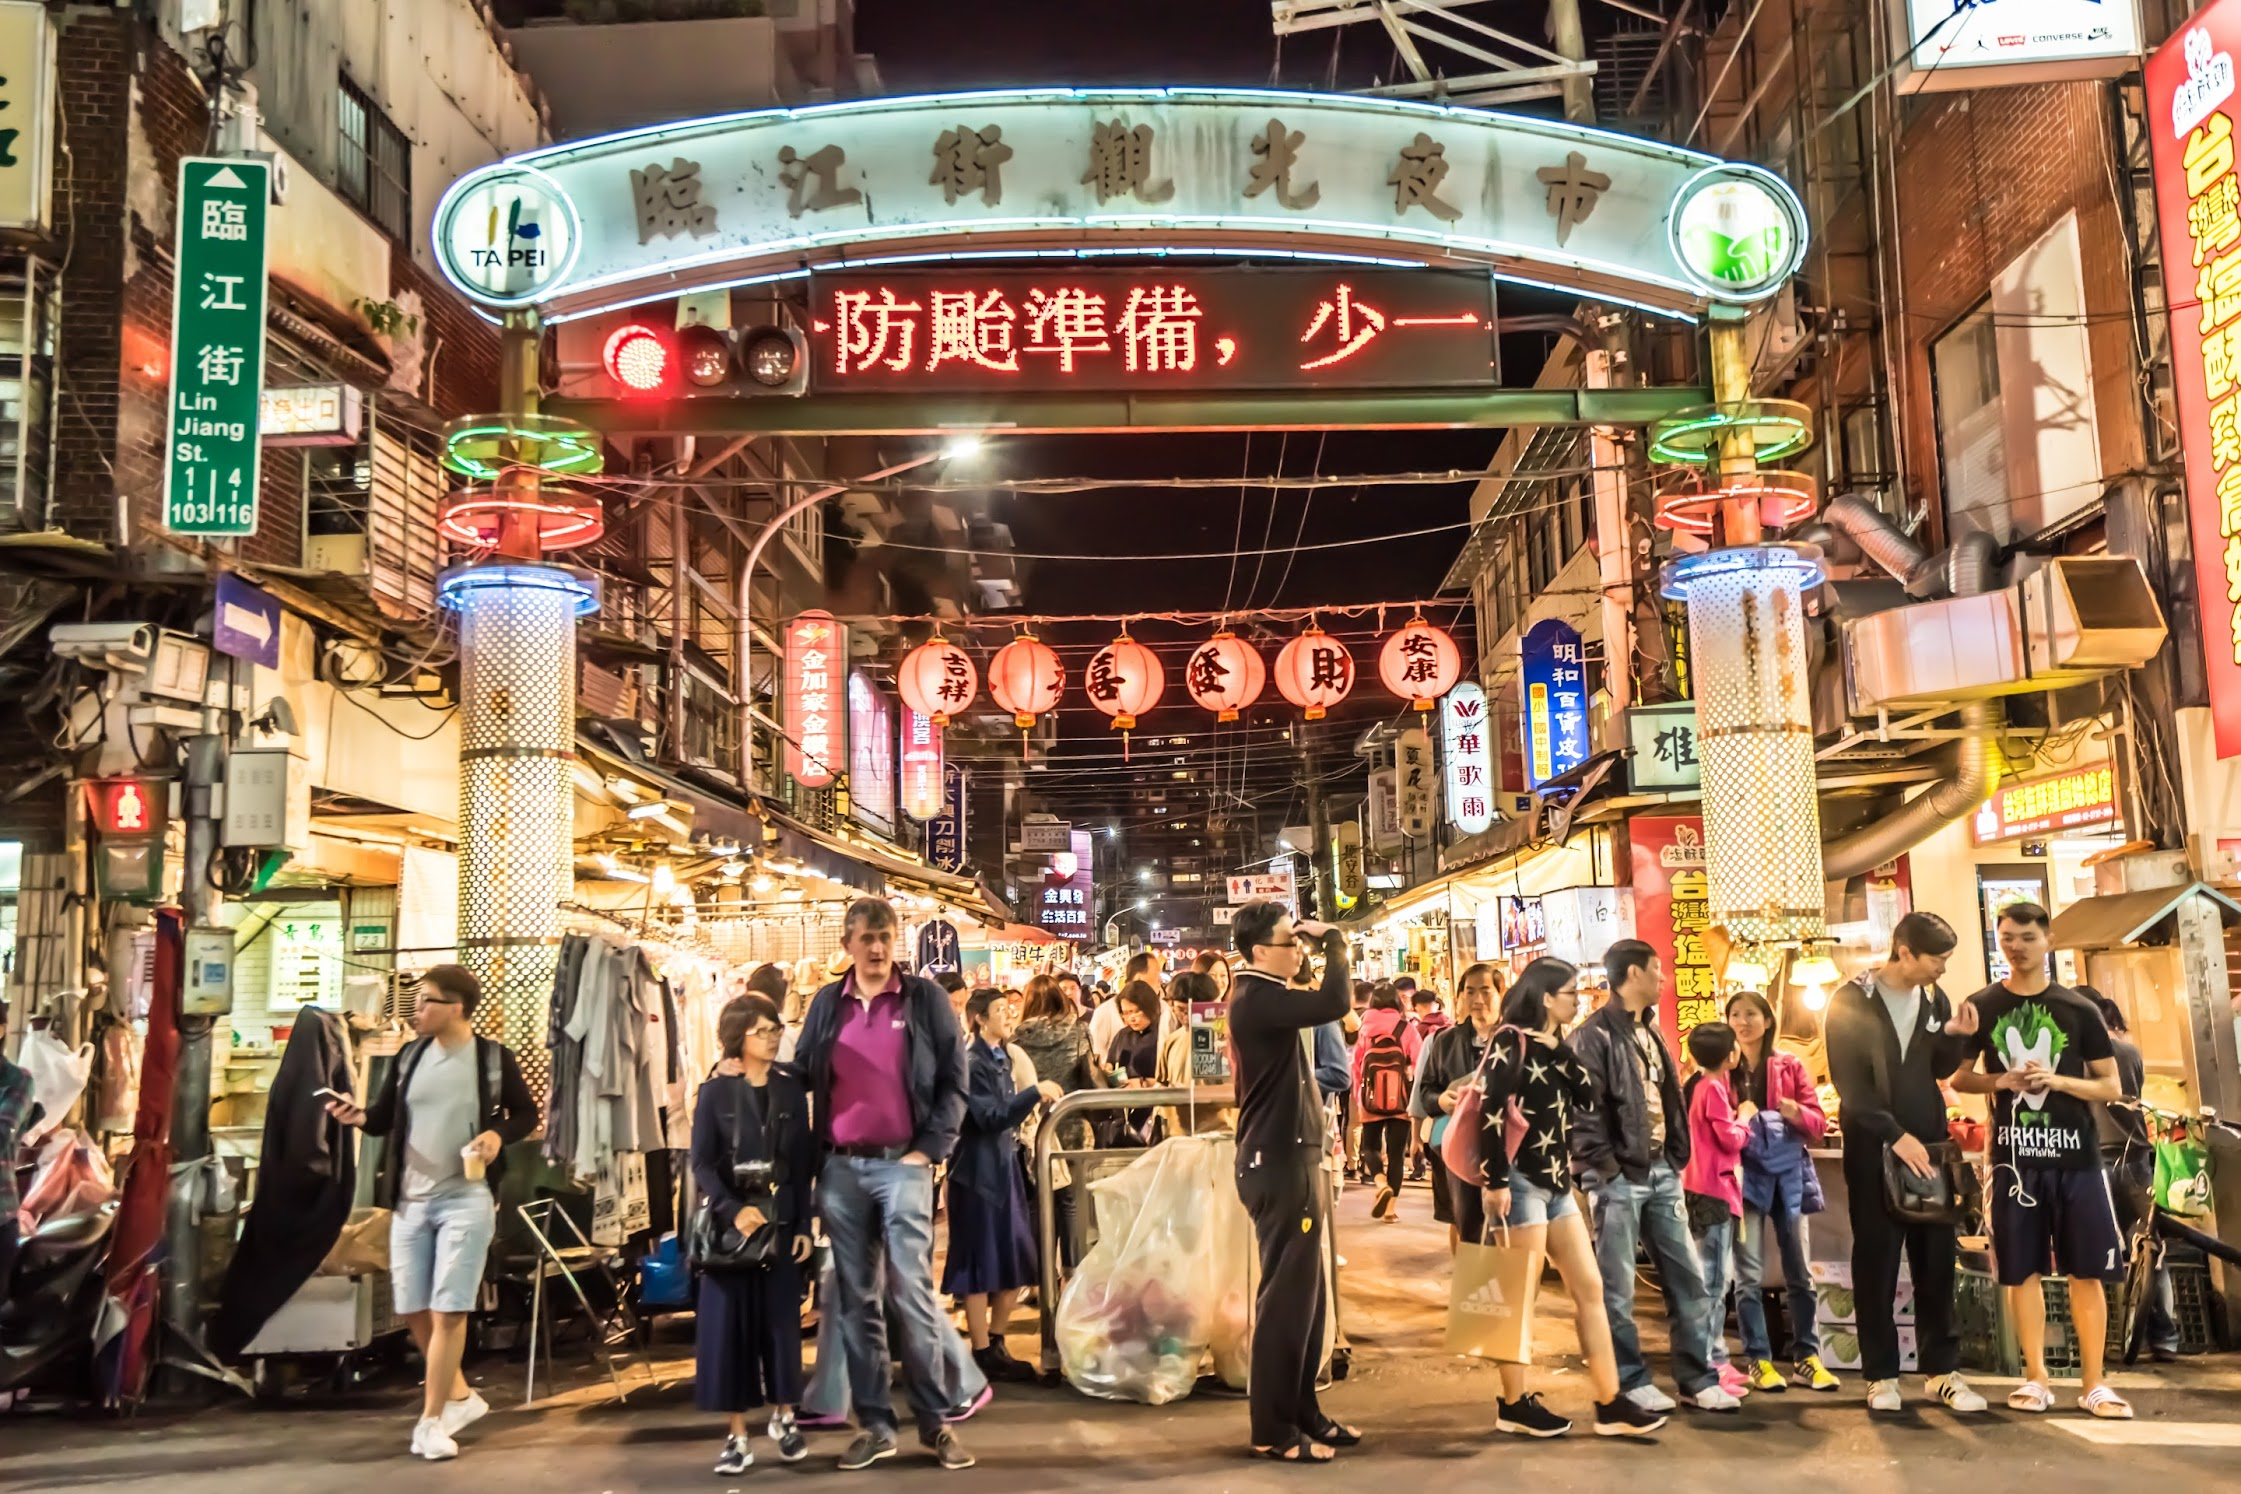 Tonghua Night Market (Linjiang Street Night Market)1